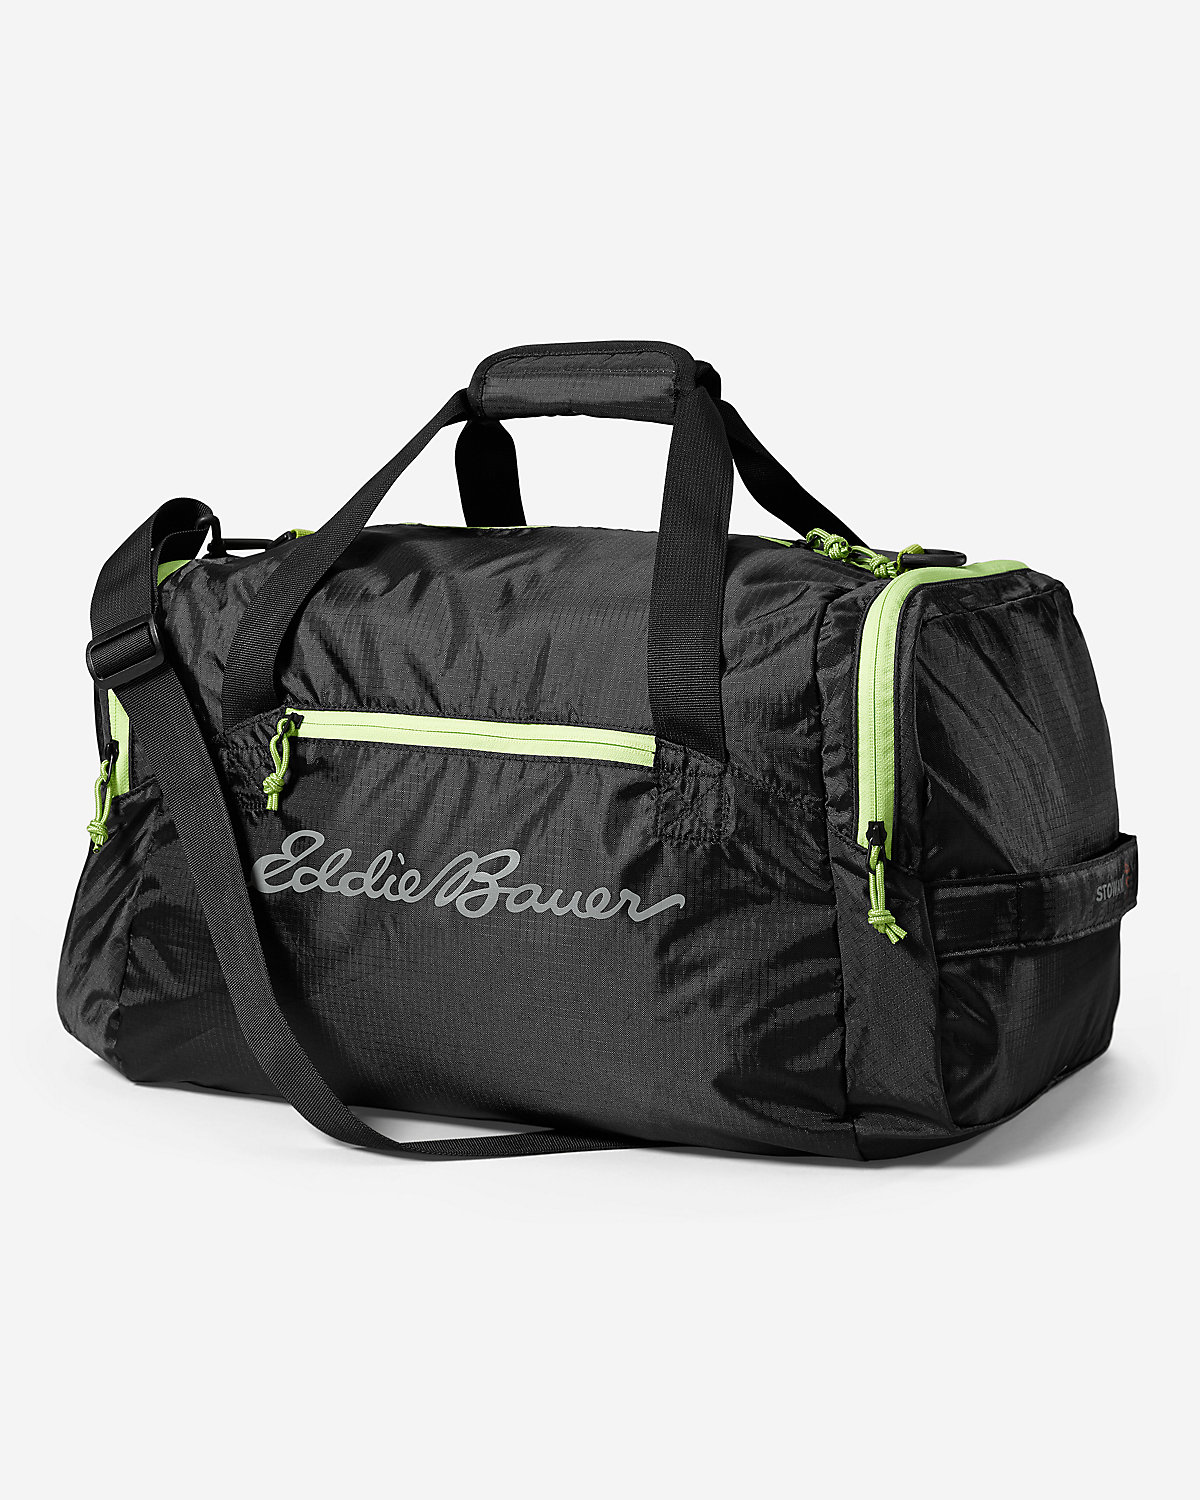 Stowaway Packable Duffel Sale $15.00  Free Shipping from Eddie Bauer